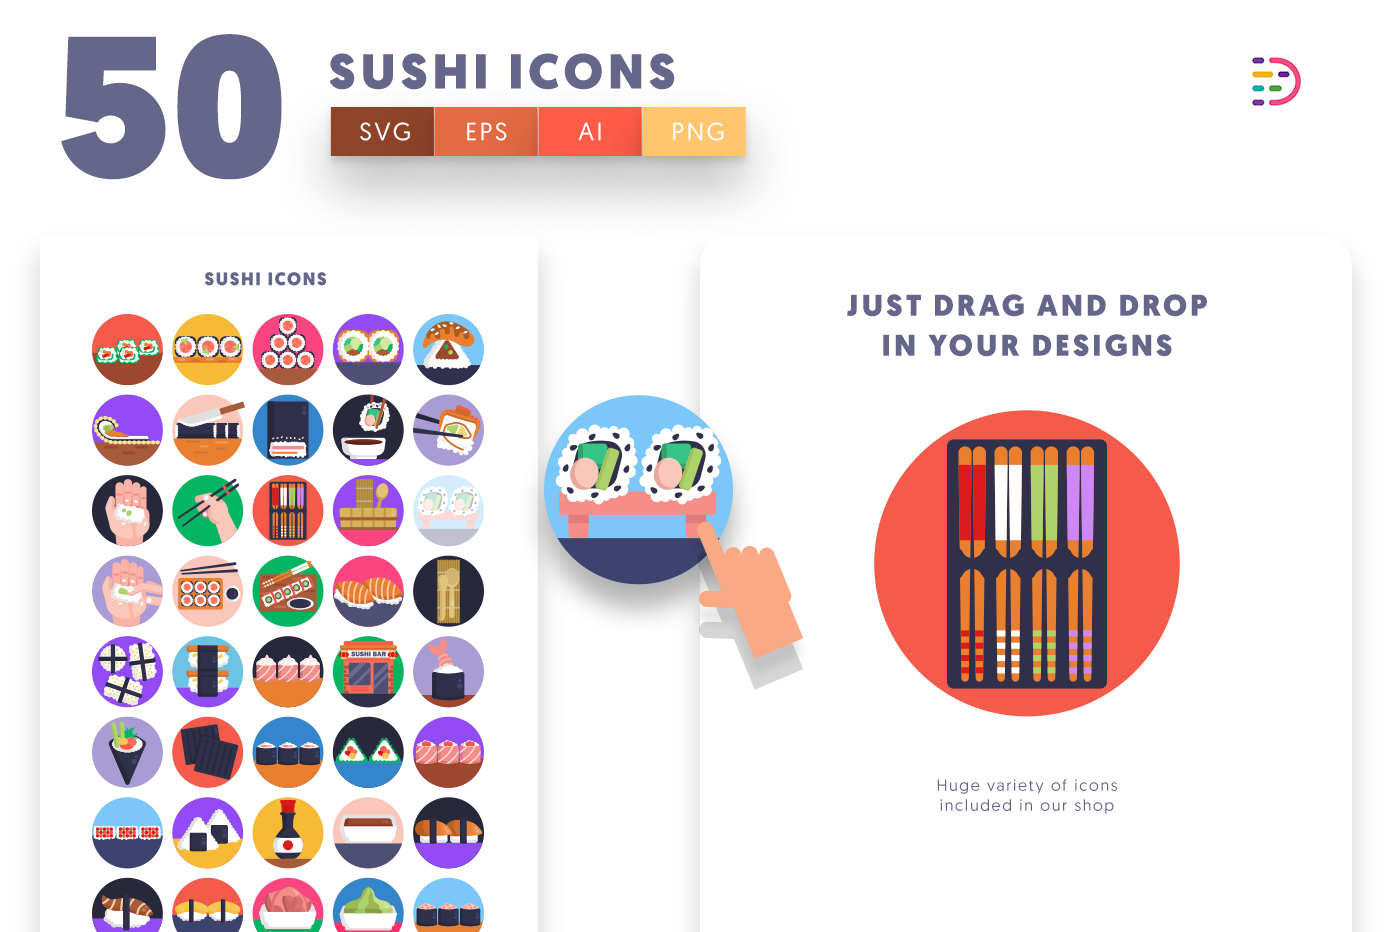 Drag and drop vector 50 Sushi Icons